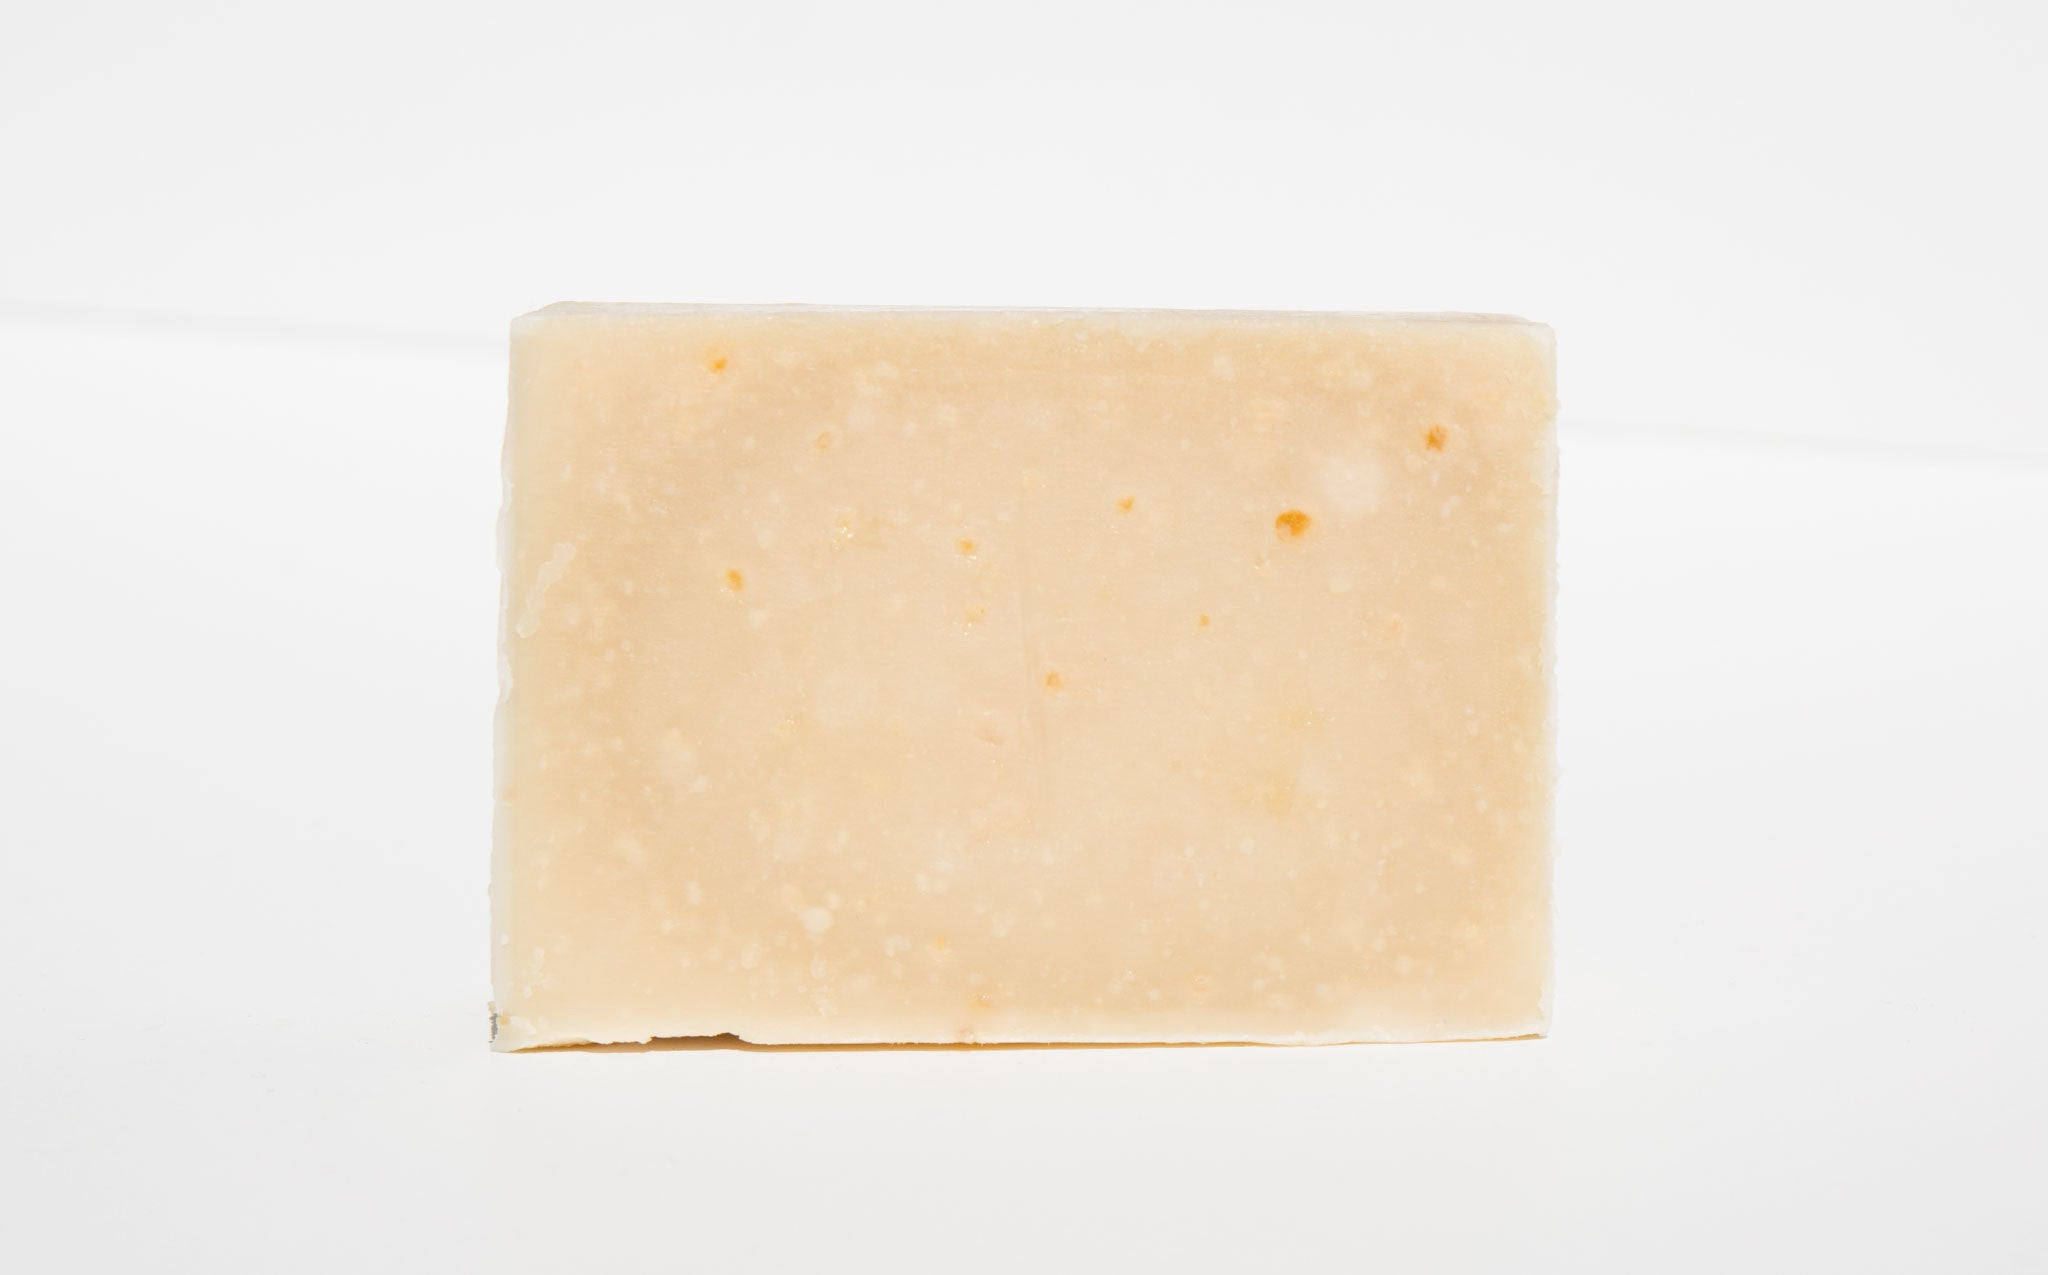 Sake Kasu Facial Soap single bar kindred black